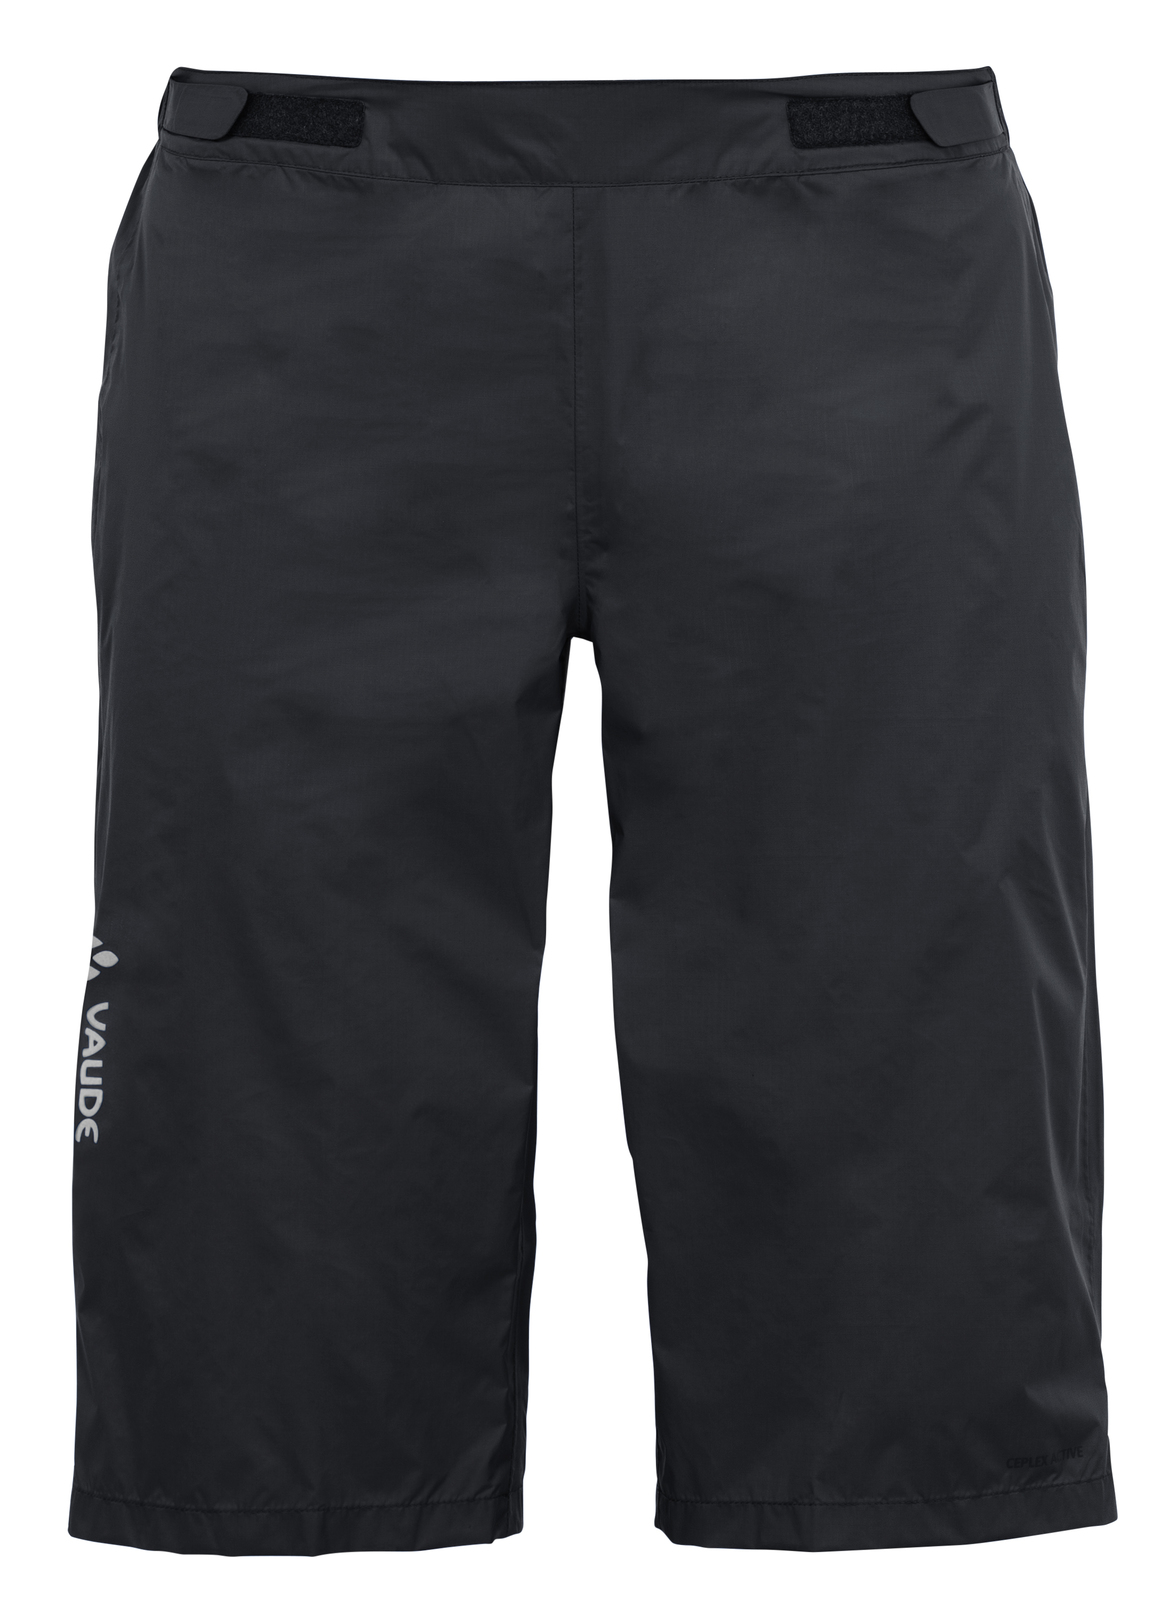 VAUDE Men´s Tremalzo Rain Shorts black Größe XL - schneider-sports